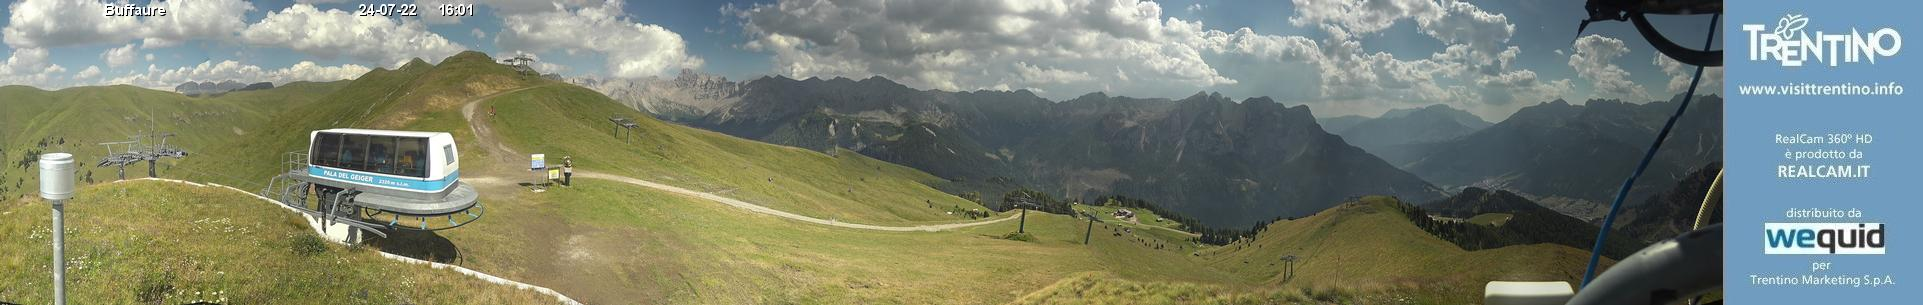 Webcam 360° Buffaure (Pozza di Fassa)